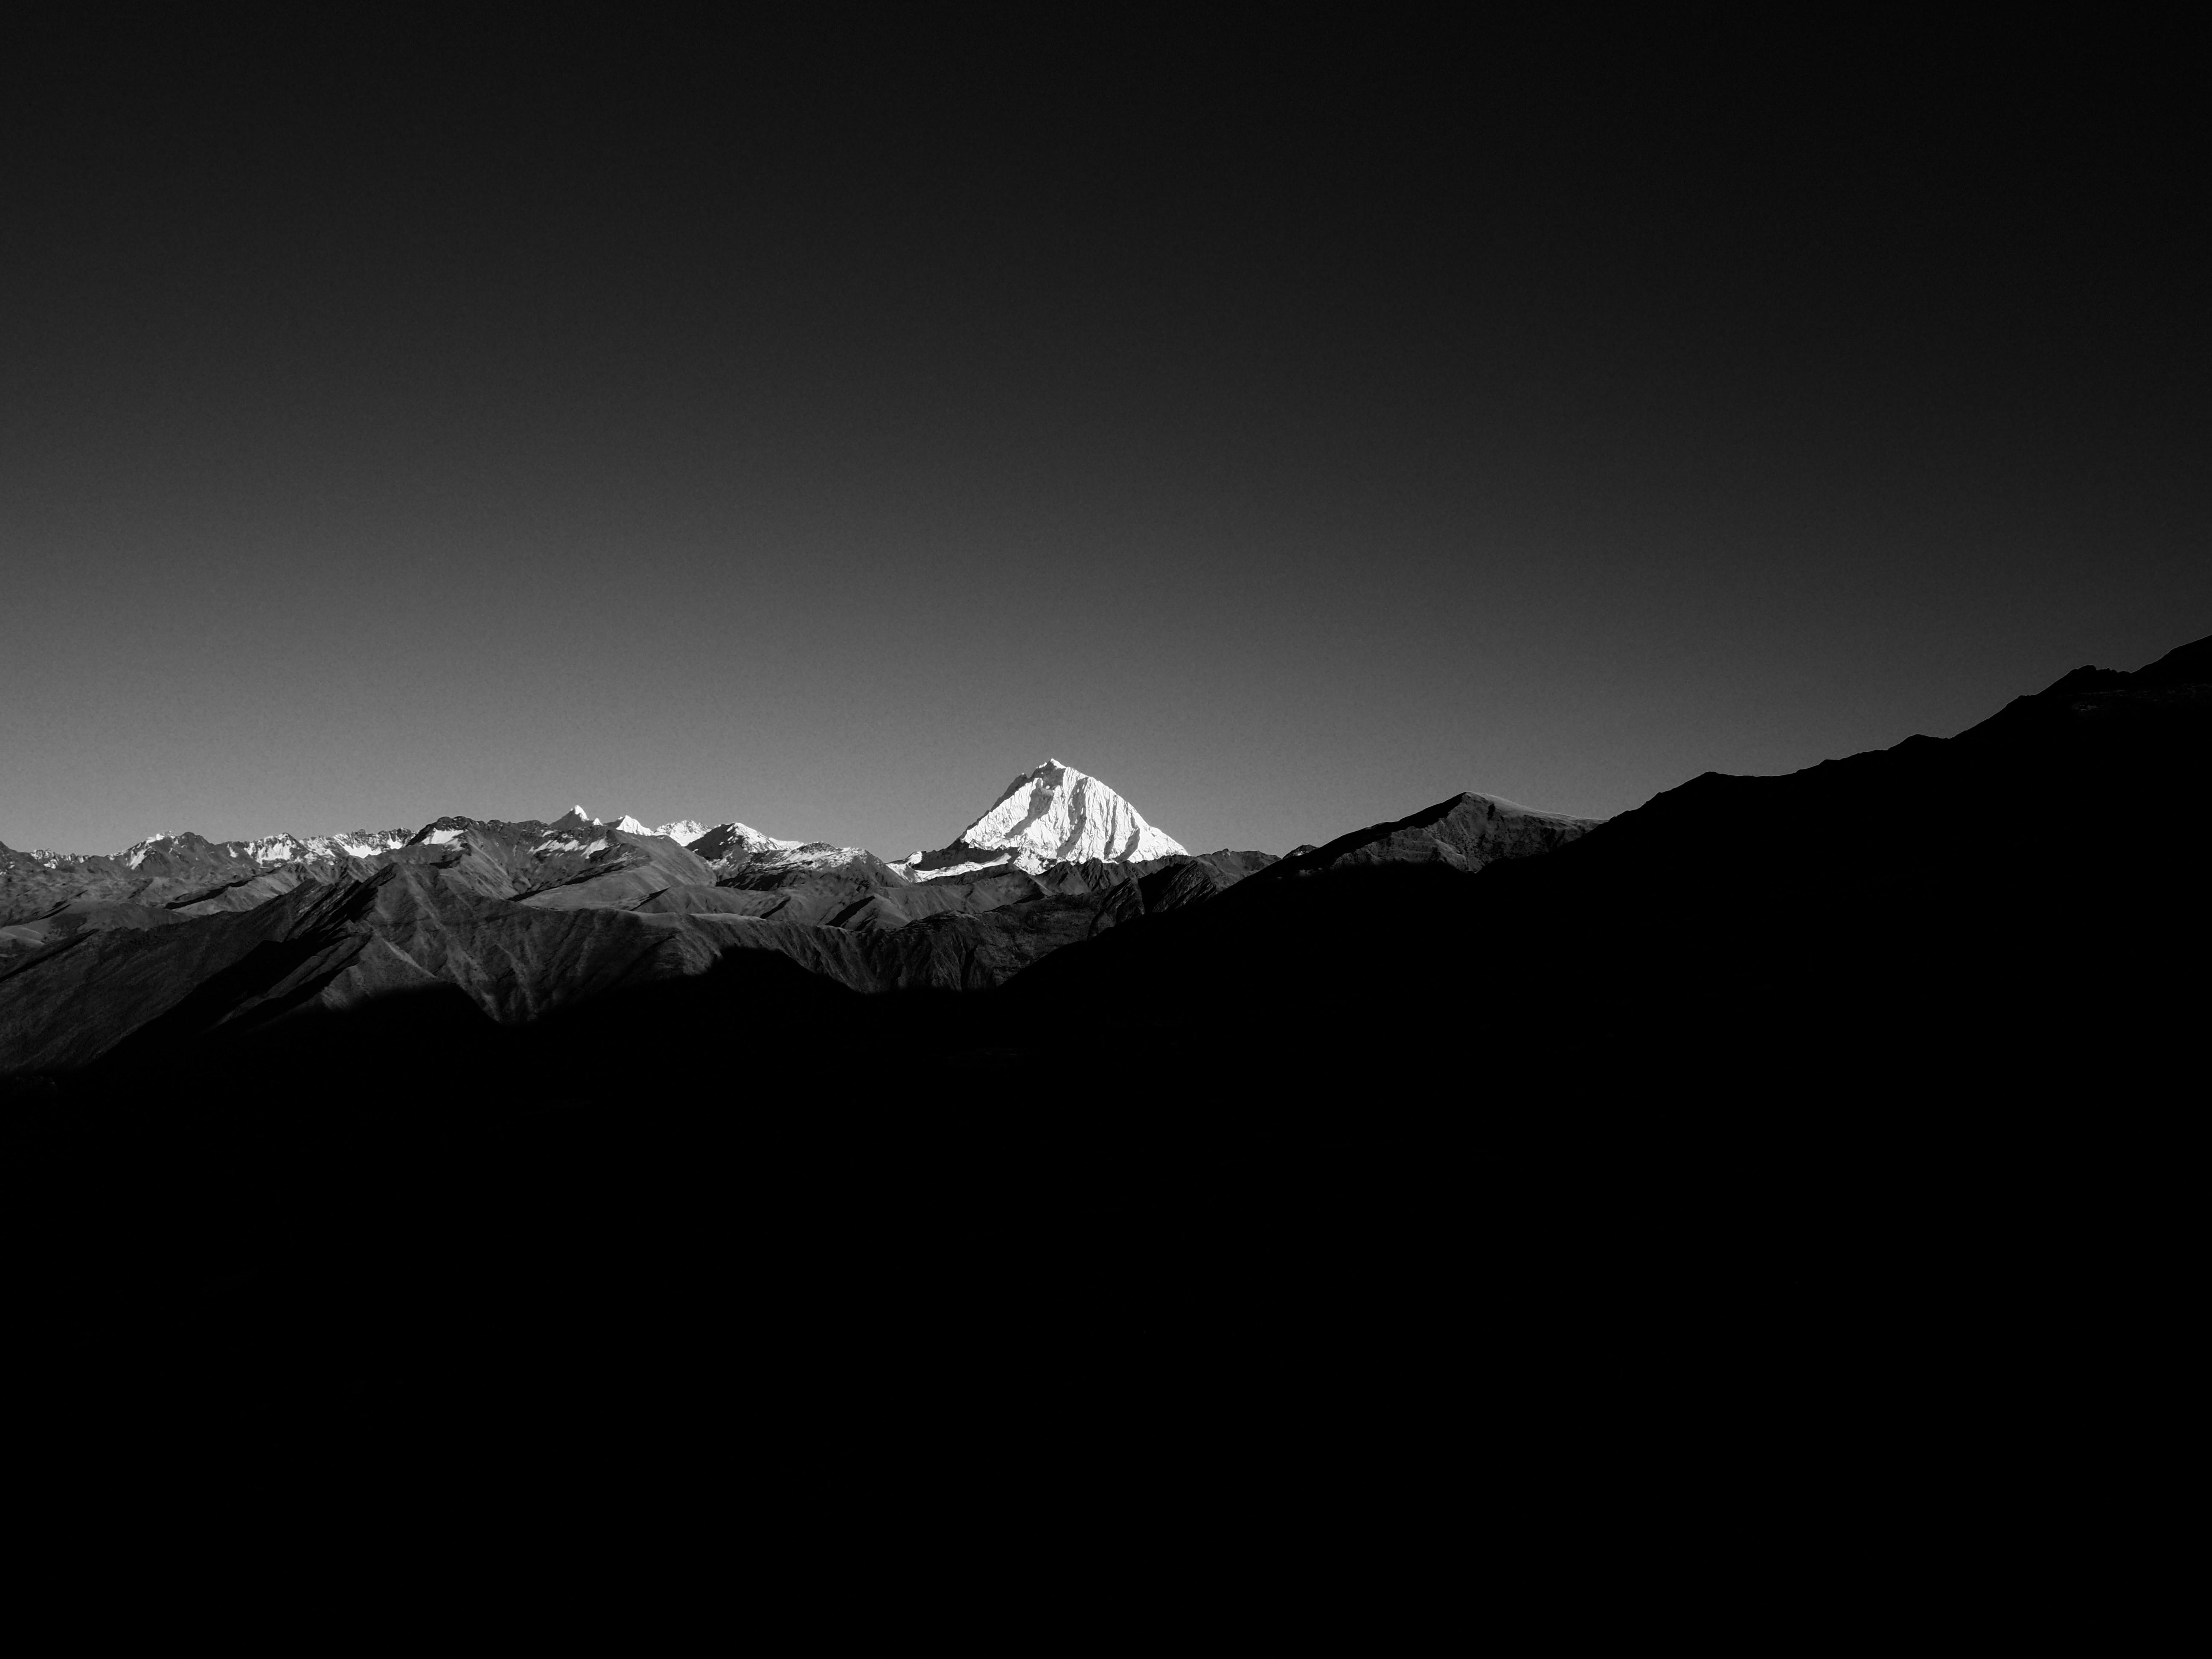 grayscale and panoramic photographies of snow capped mountain